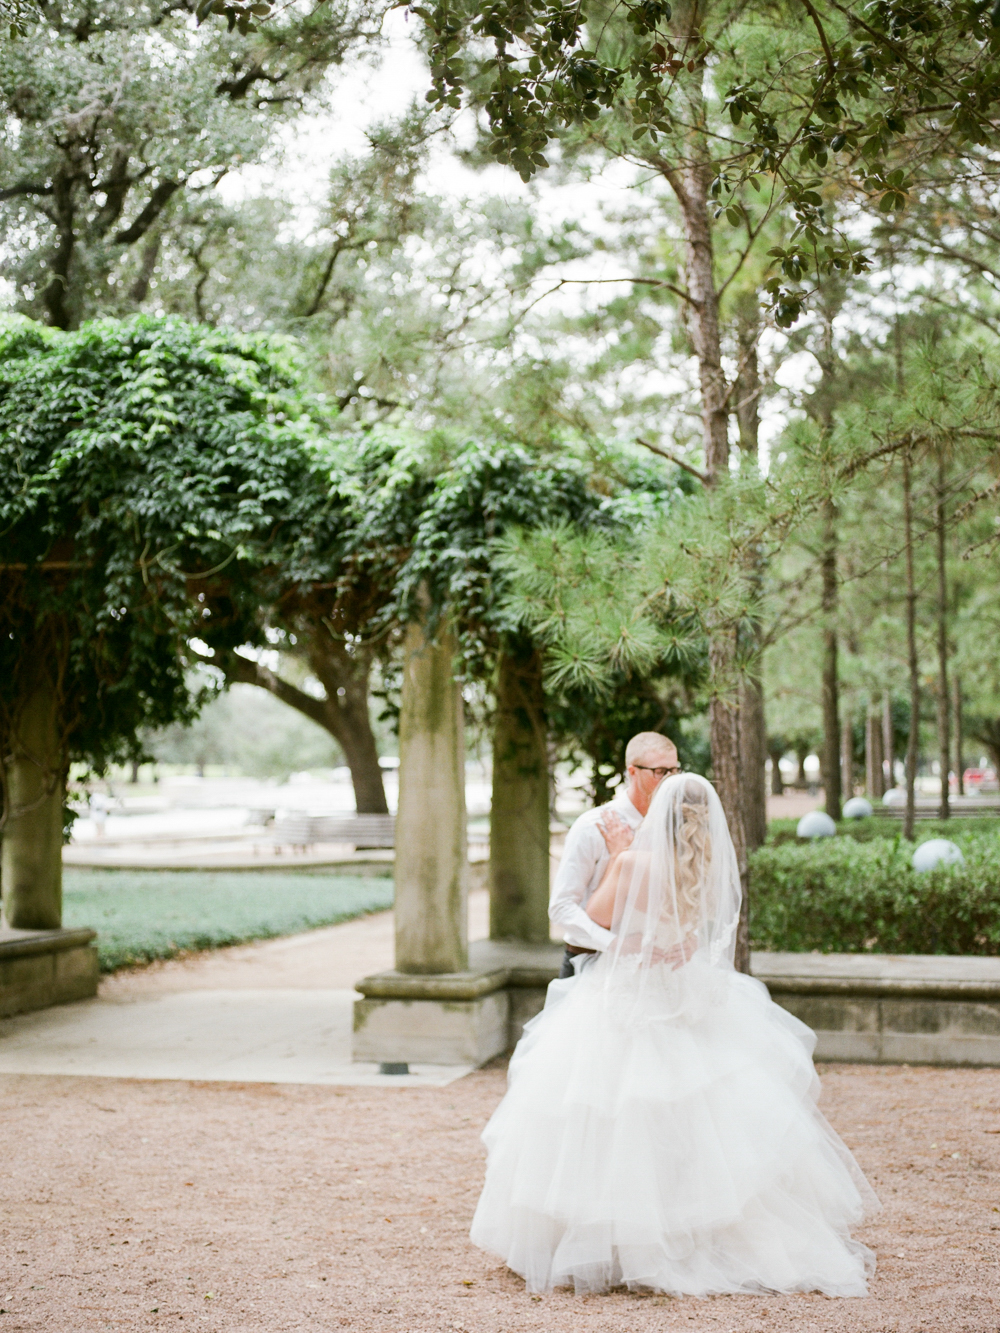 benefits of a first look_wedding photography_wedding photographer_film wedding photographer_Christine Gosch_www.christinegosch.com_Houston, Texas wedding photographer_ Houston, Texas-16.jpg